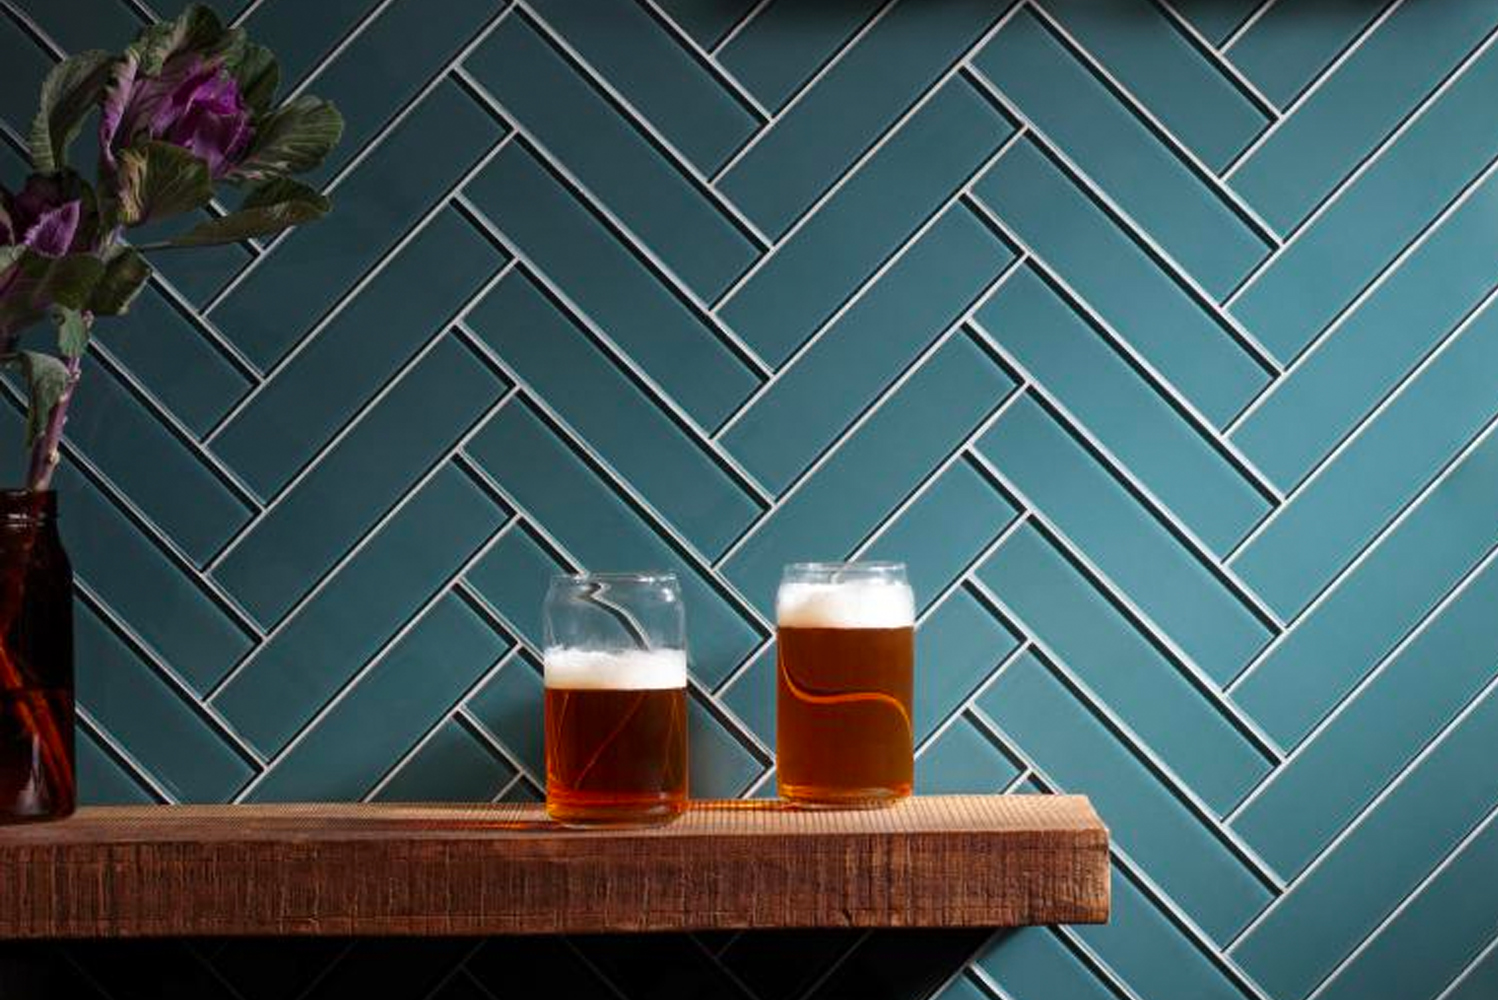 Introducing Island Stone's Glass Essentials, a new line of fused glass tiles that provides designers with mosaics ideal for mixing into applications.